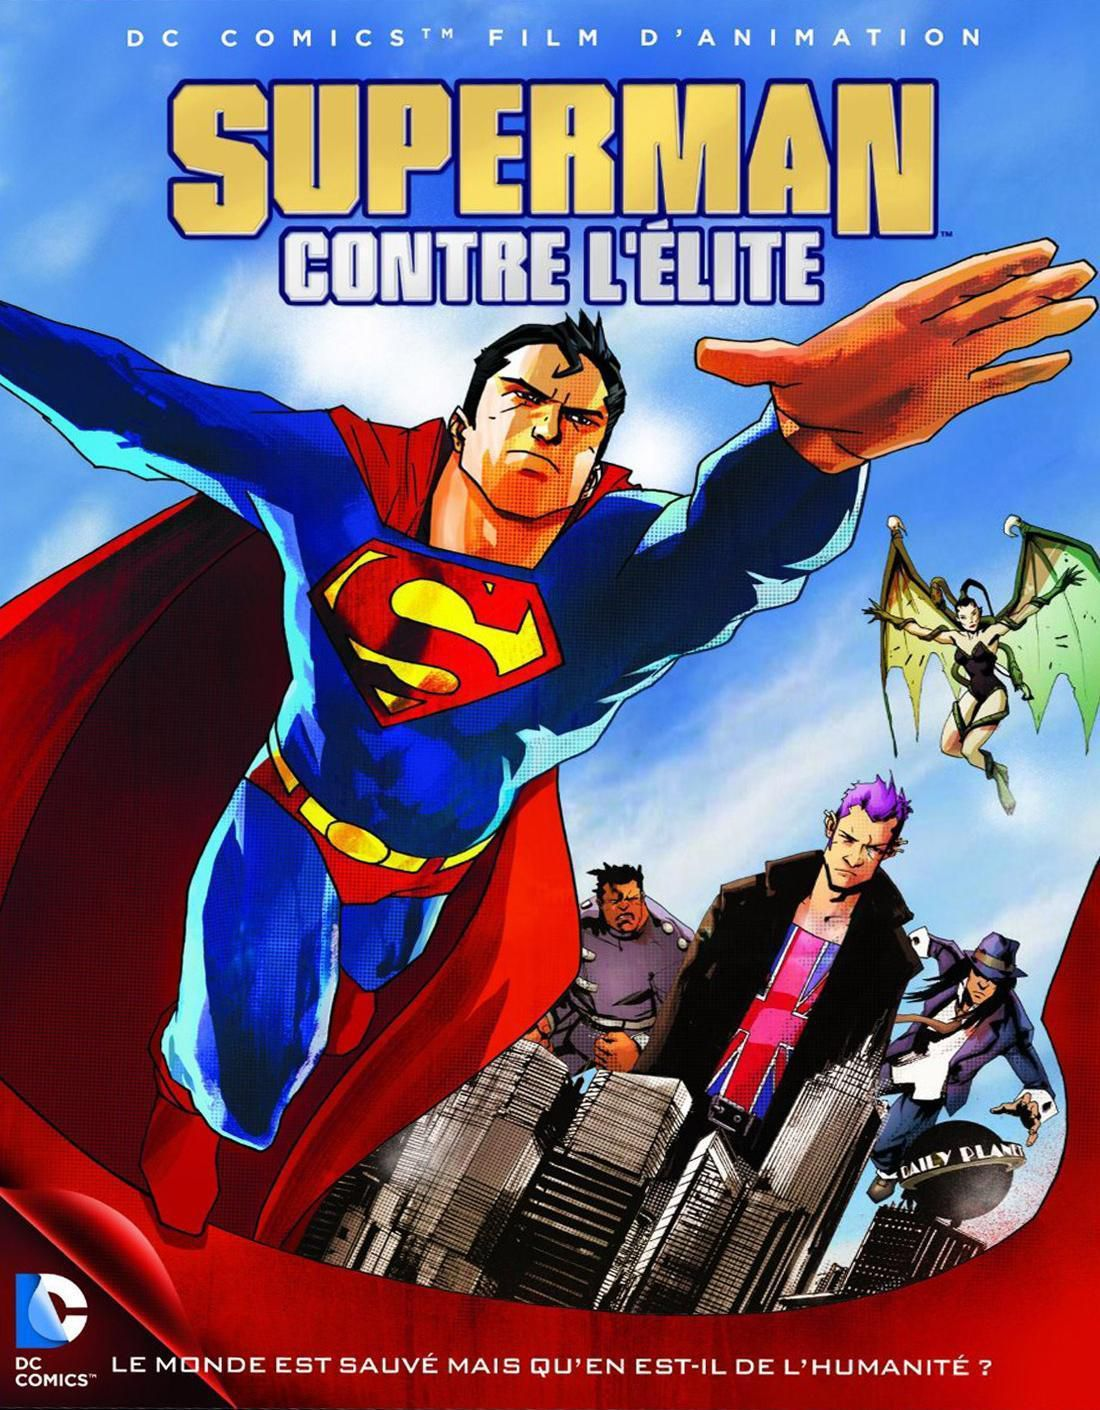 Superman contre l'Élite - Long-métrage d'animation (2012) streaming VF gratuit complet